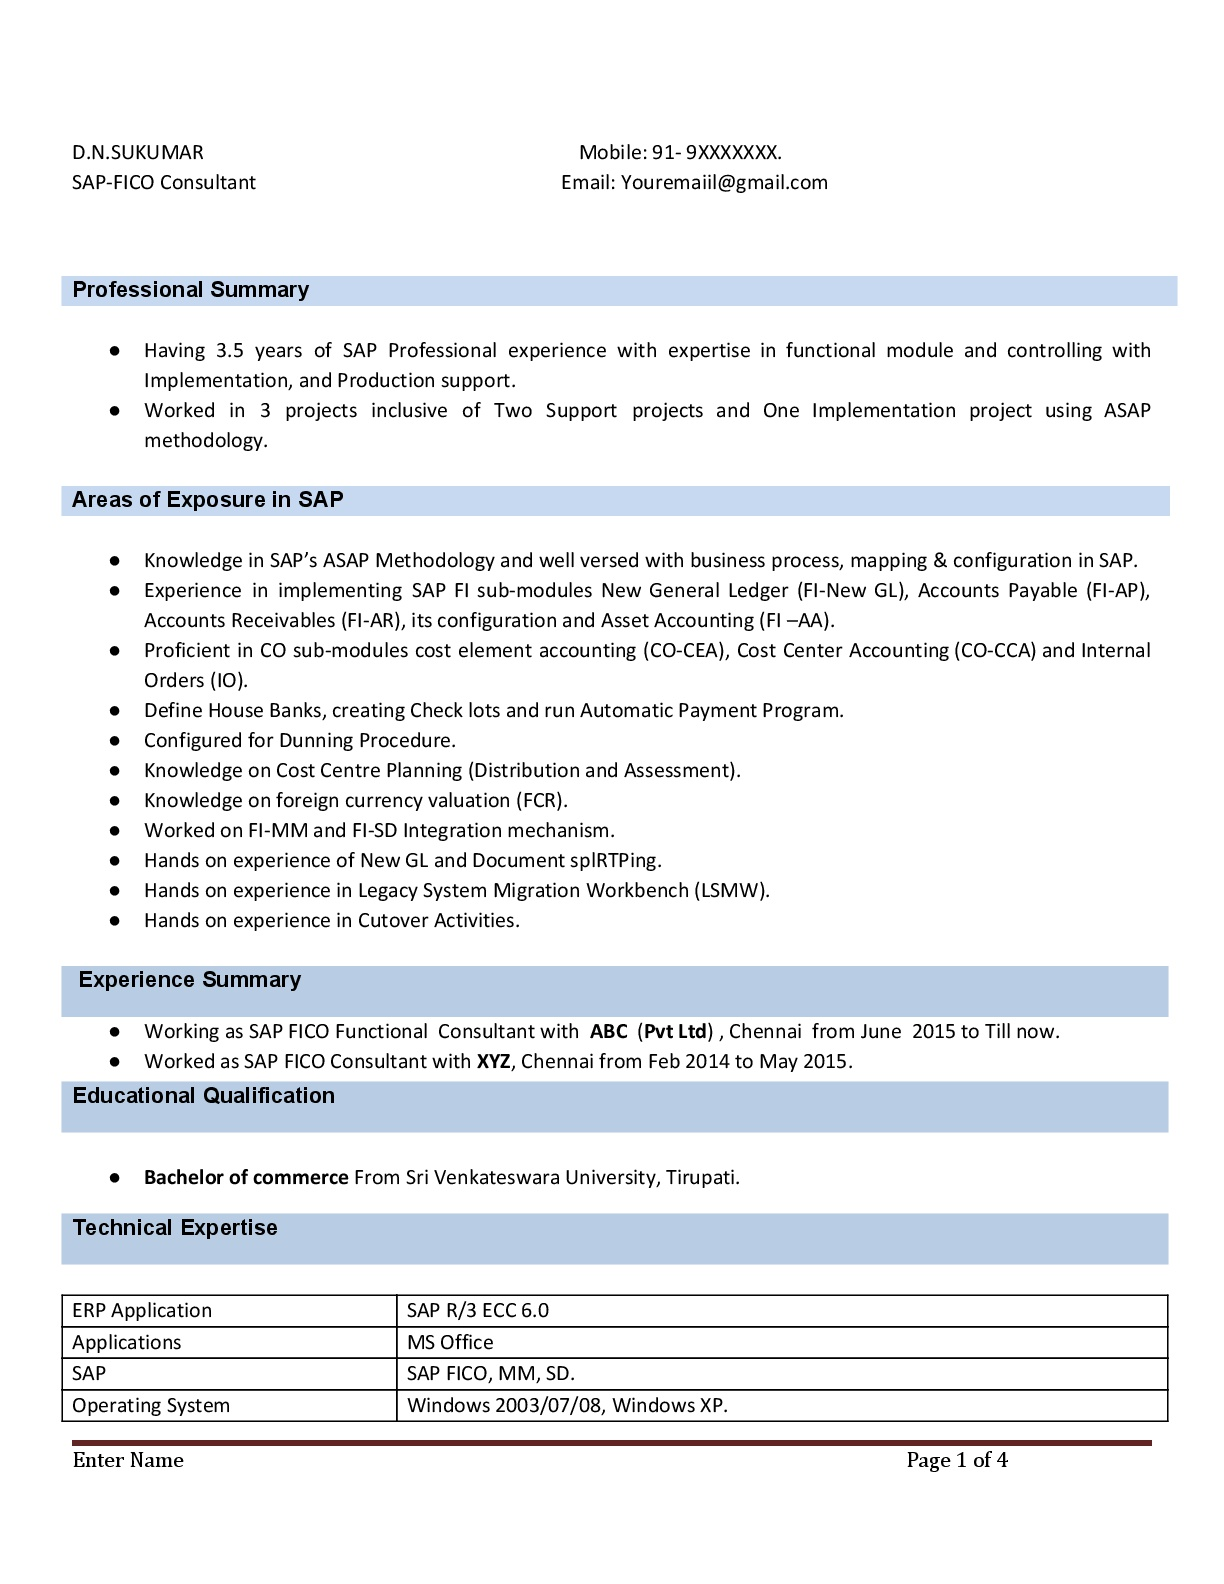 sap fico resume with years experience instant samples projects now sample for consultant Resume Sample Resume For Sap Fico Consultant 3 Years Experience